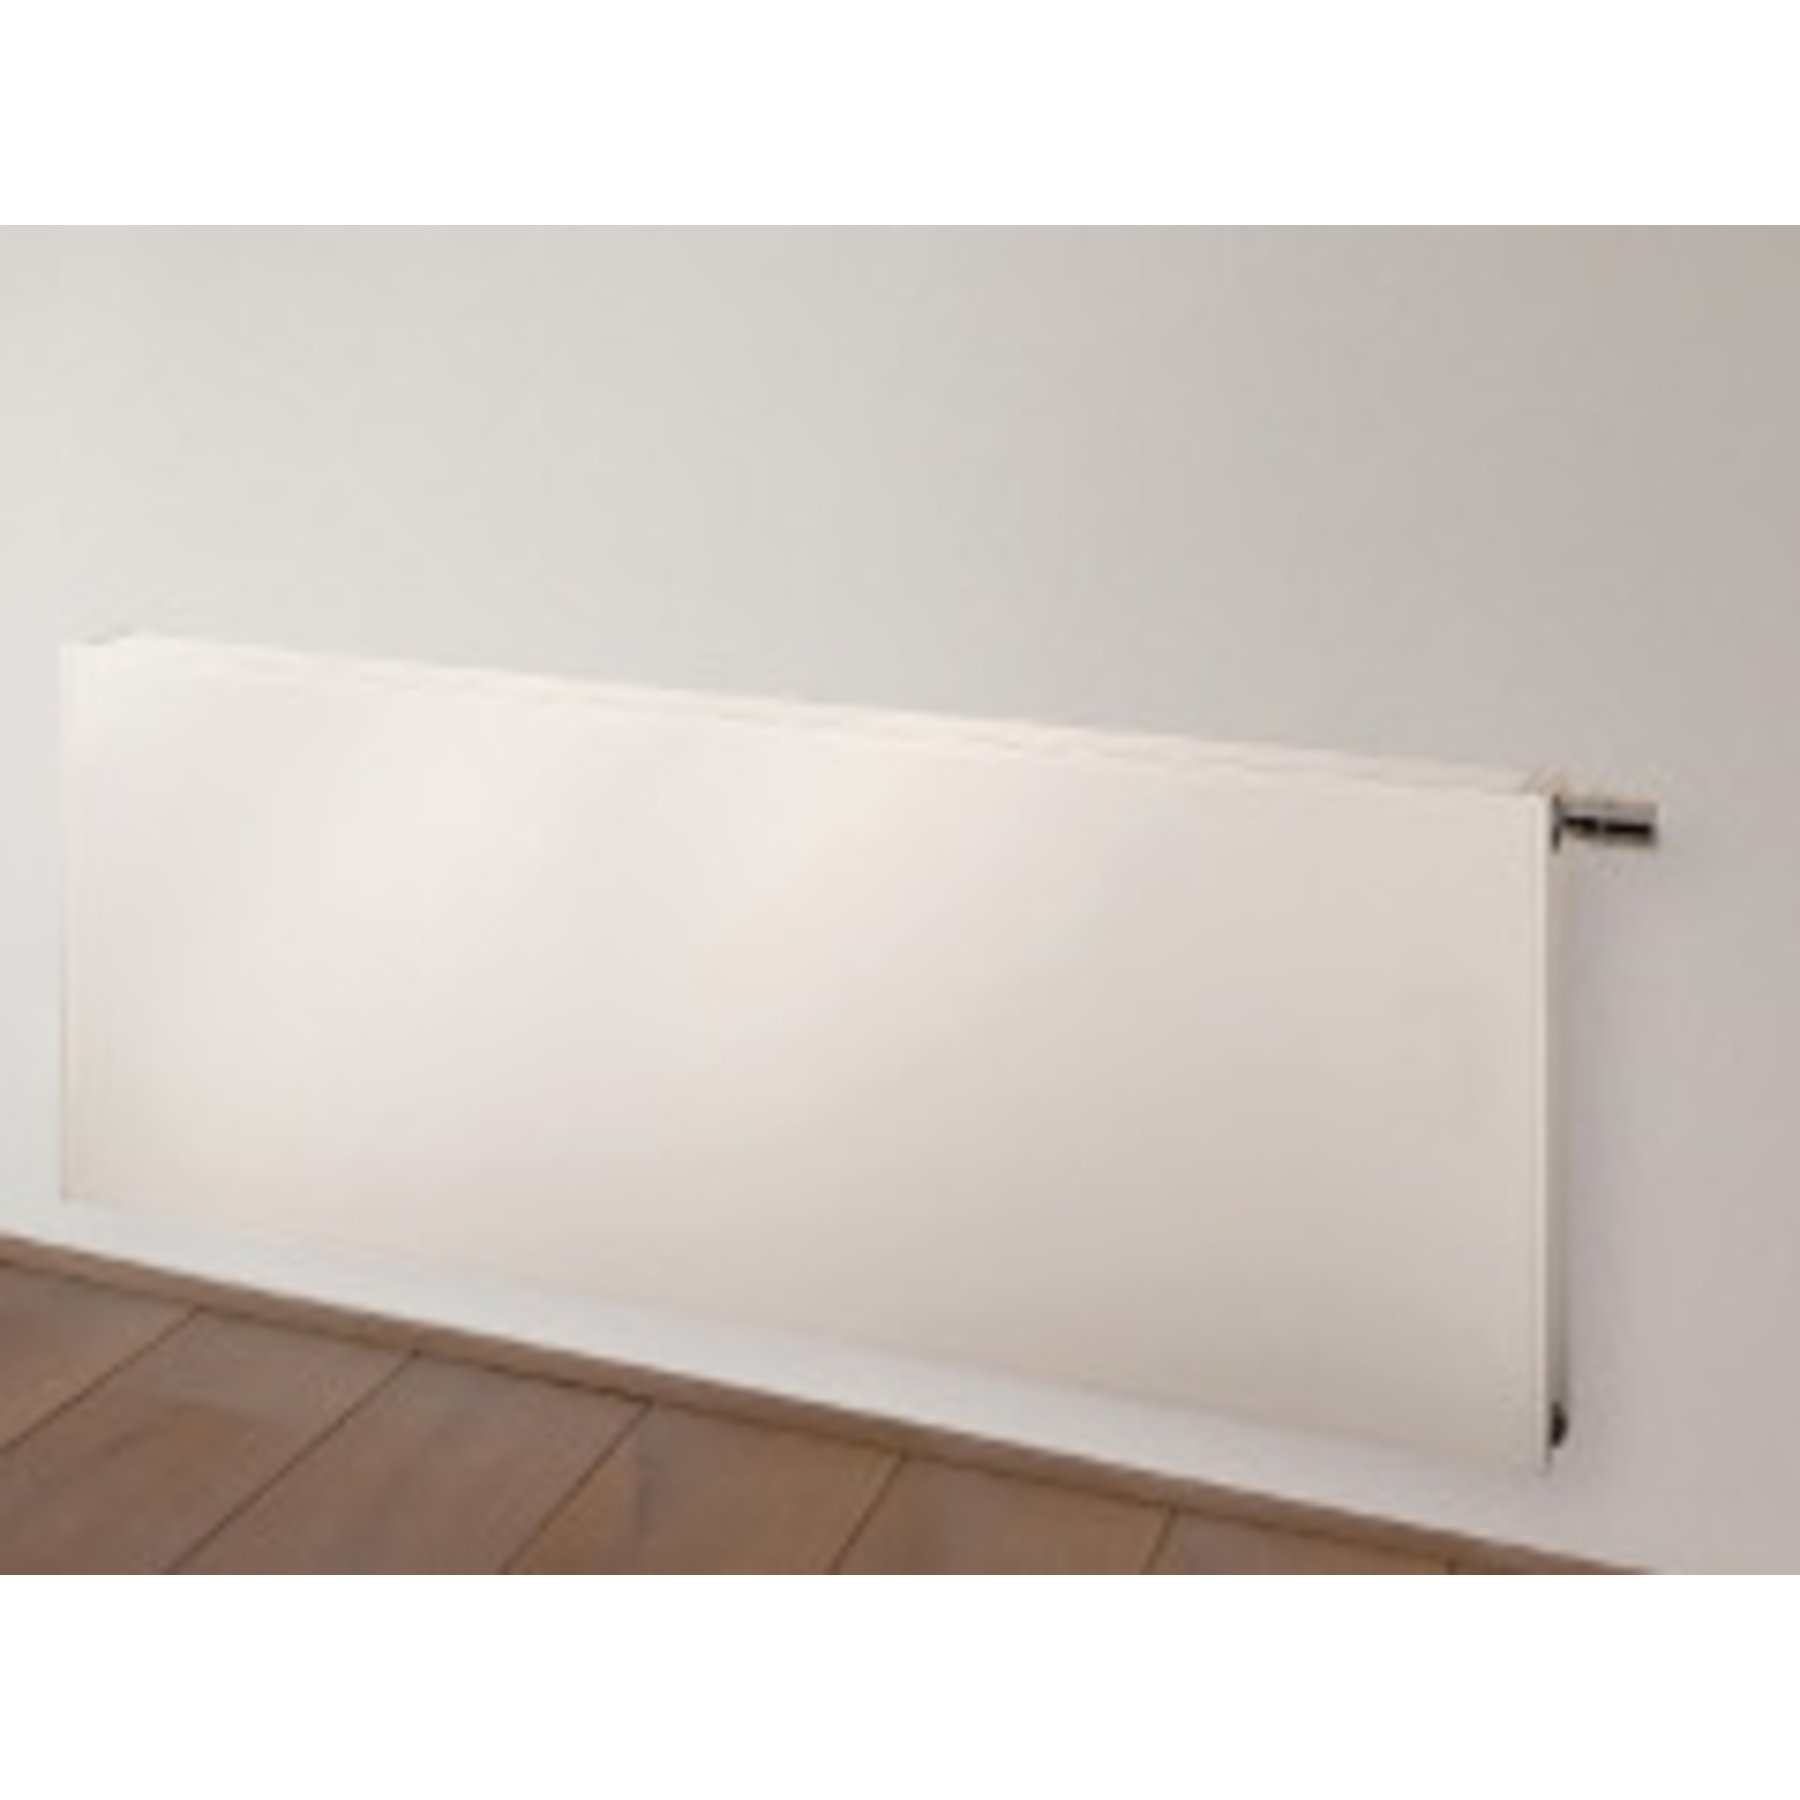 Vasco Flatline Paneelradiator type 21 400x2000mm 1828W vlak wit structuur (S600)